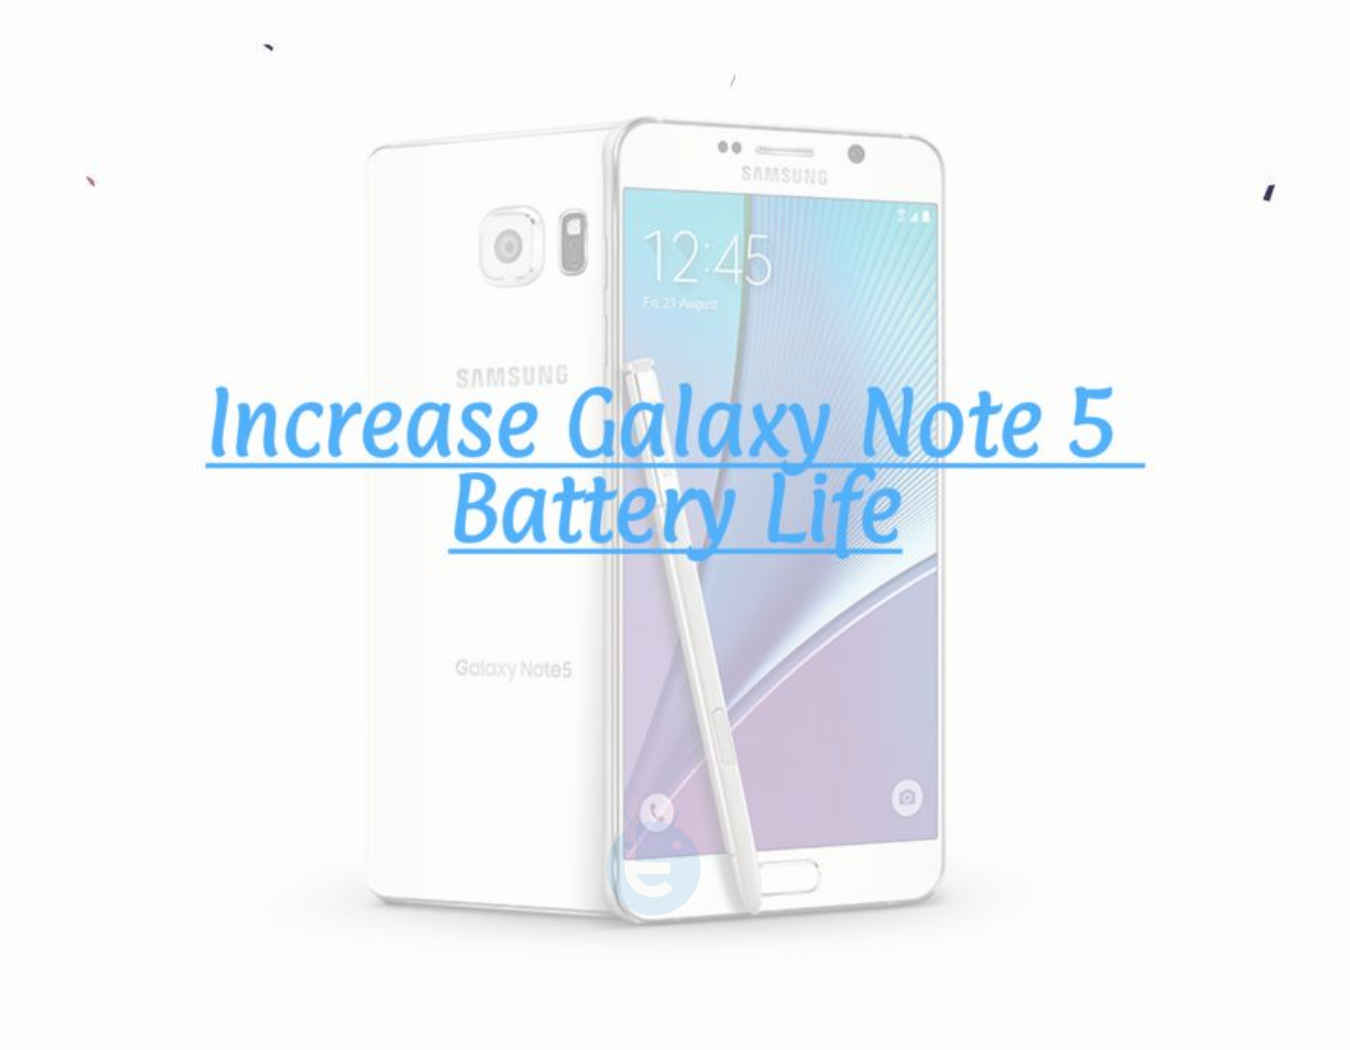 Increase Galaxy Note 5 Battery